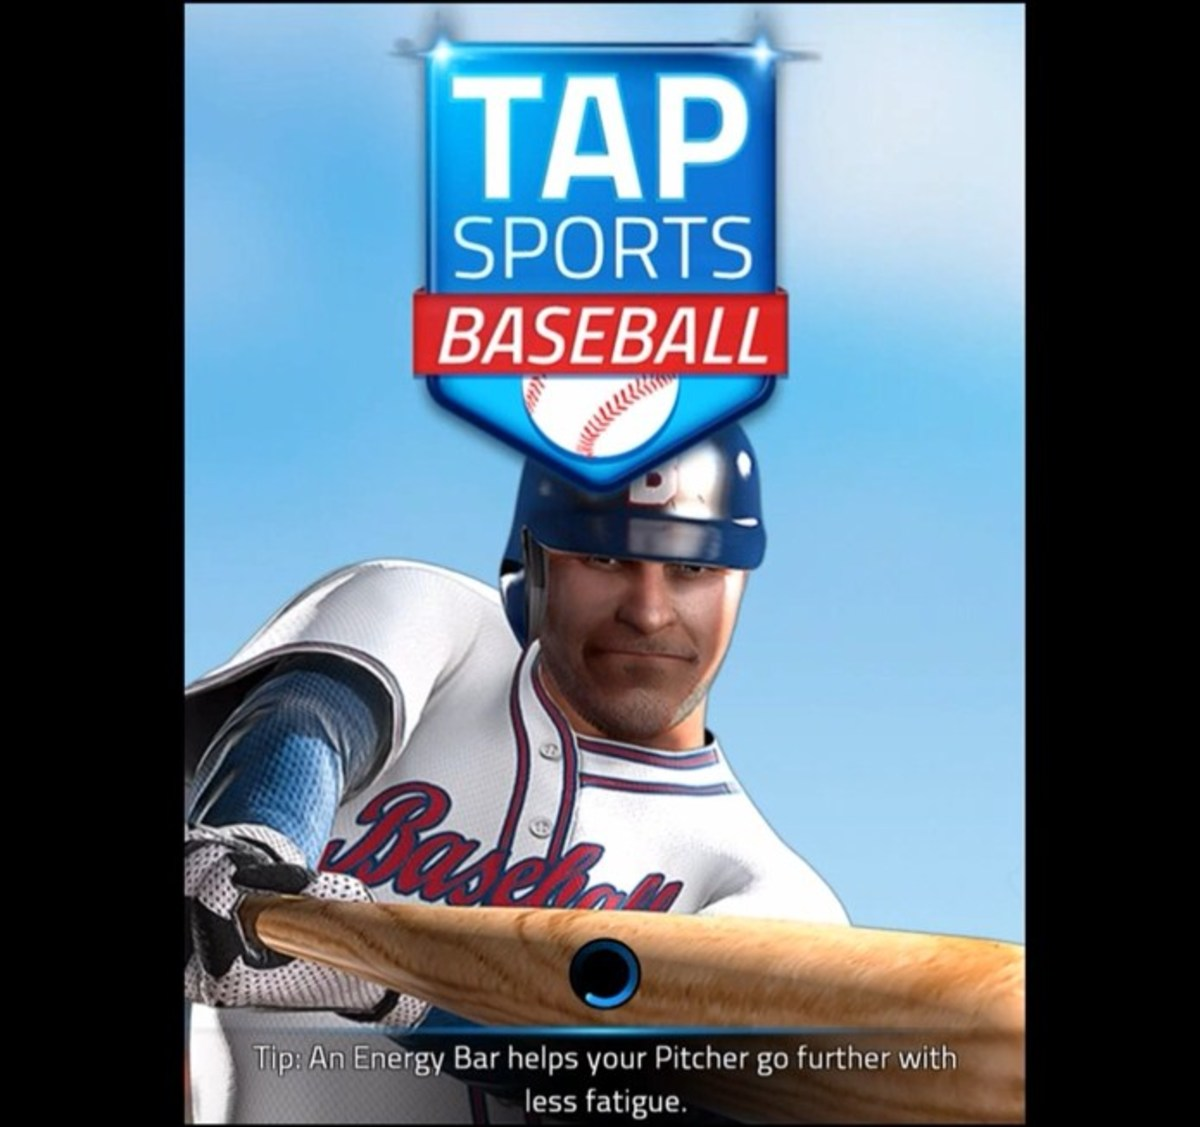 Tap Sports Baseball Mobile Game ADVANCED Tips and Tricks Guide